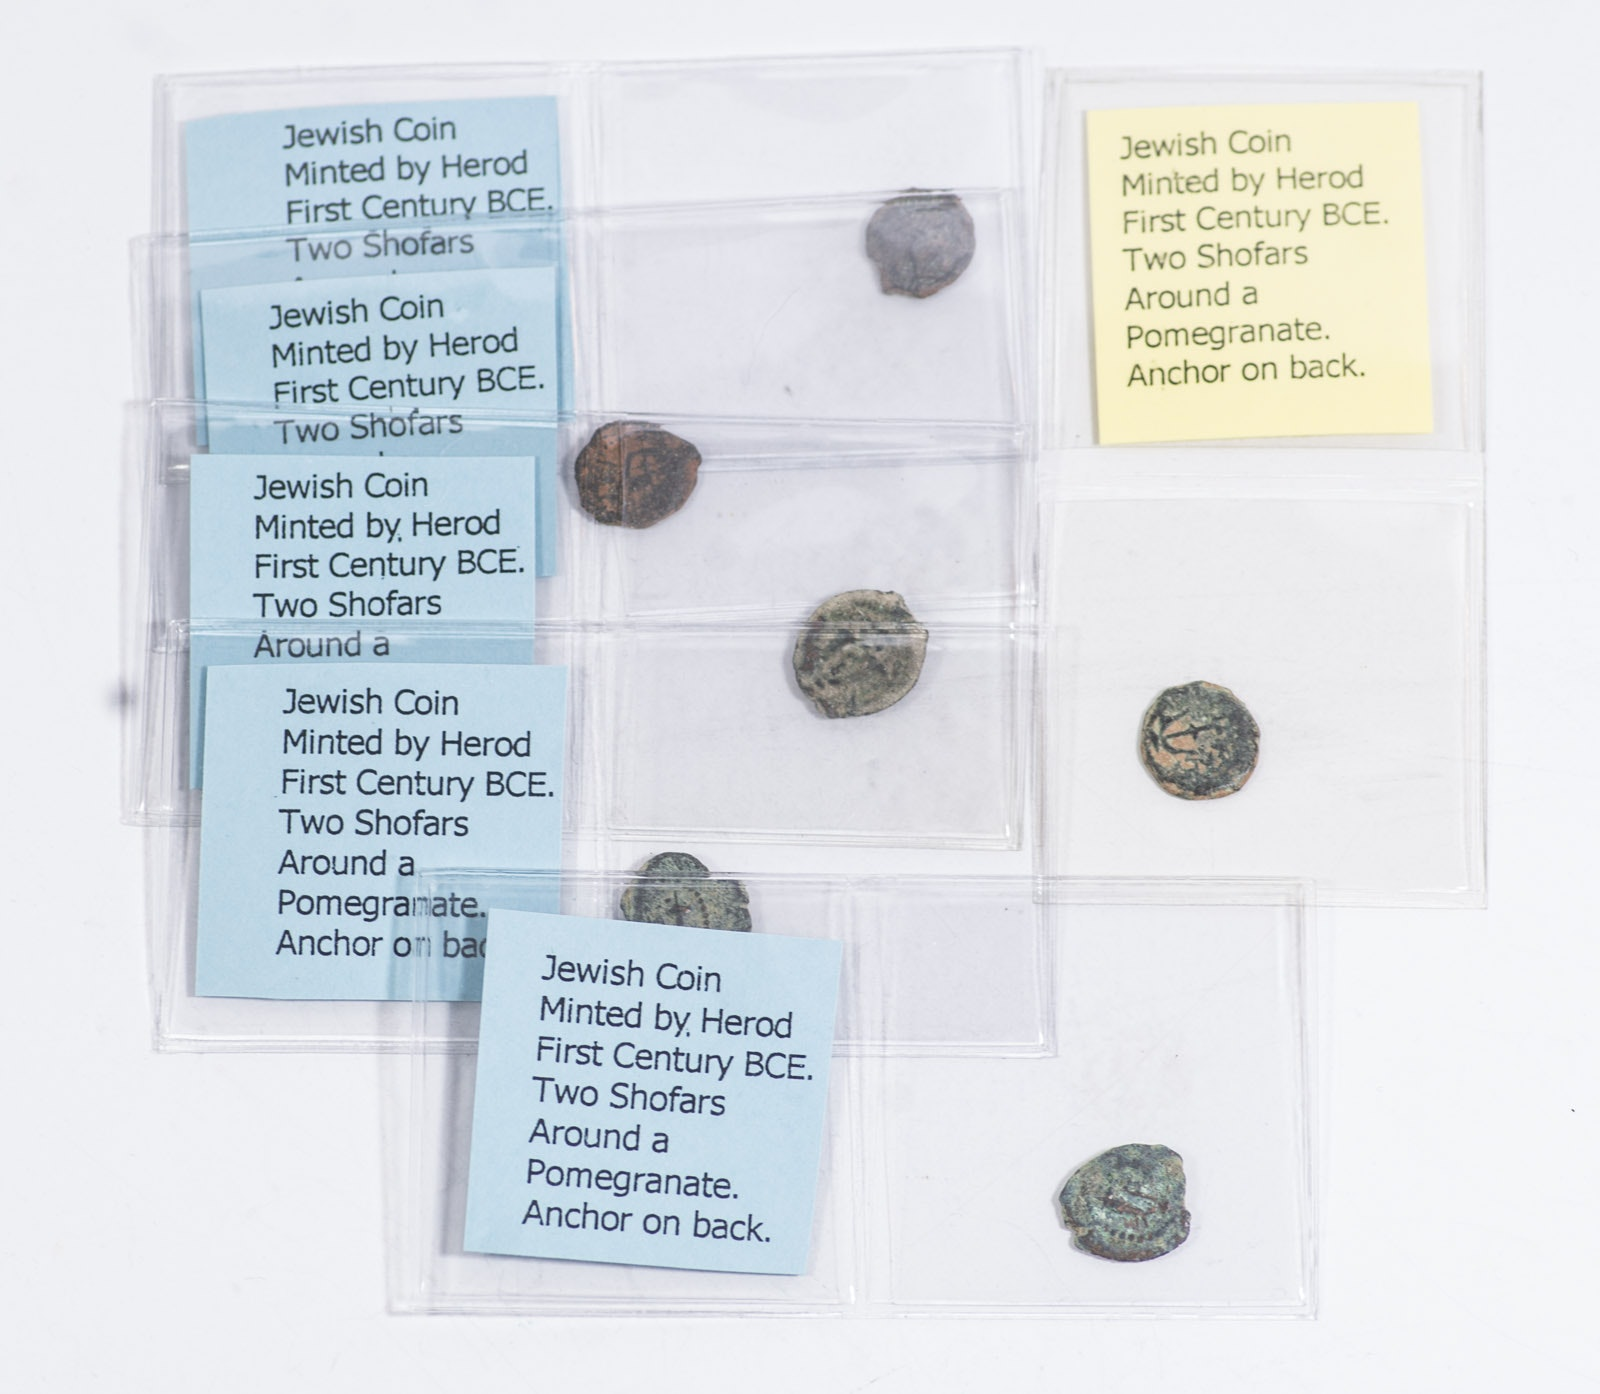 Six Ancient Jewish Prutah Coins Minted Under King Herod the Great